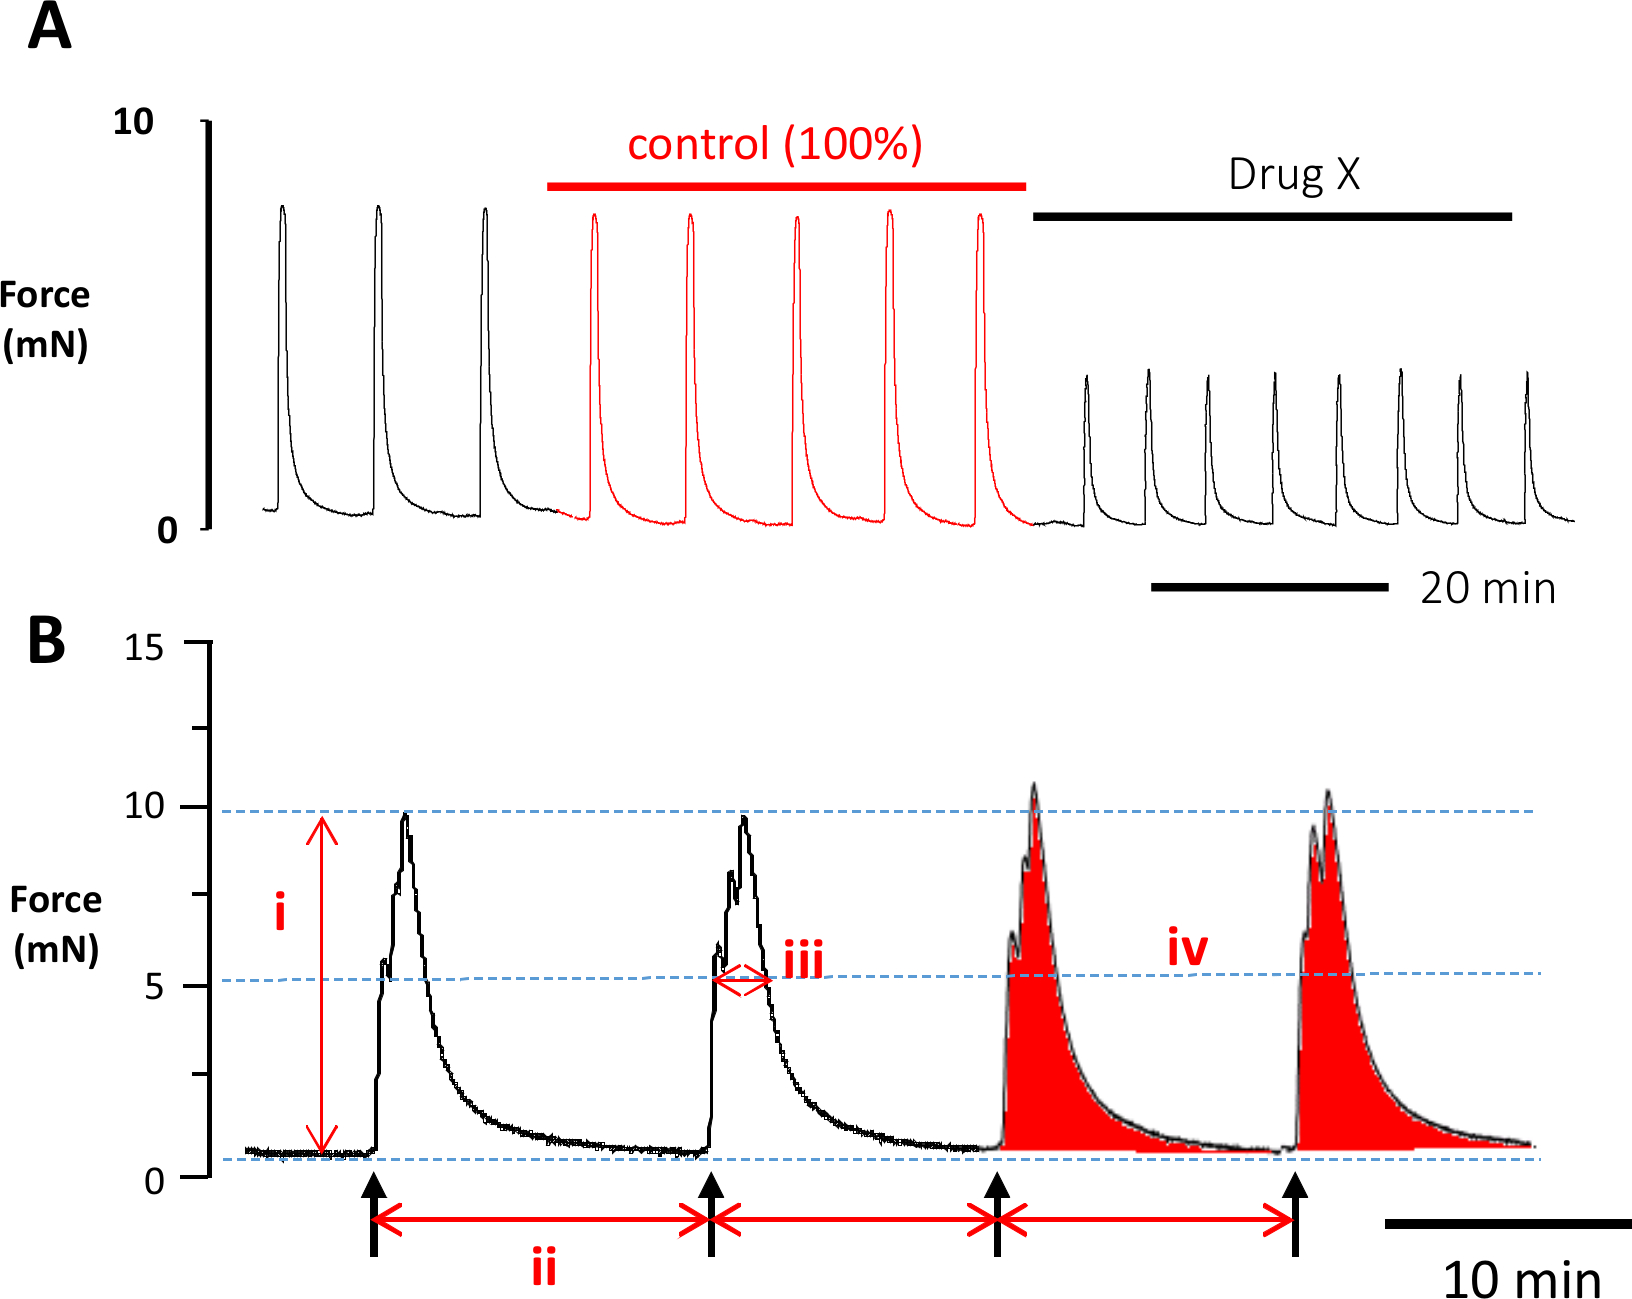 Contractility Measurements of Human Uterine Smooth Muscle to Aid